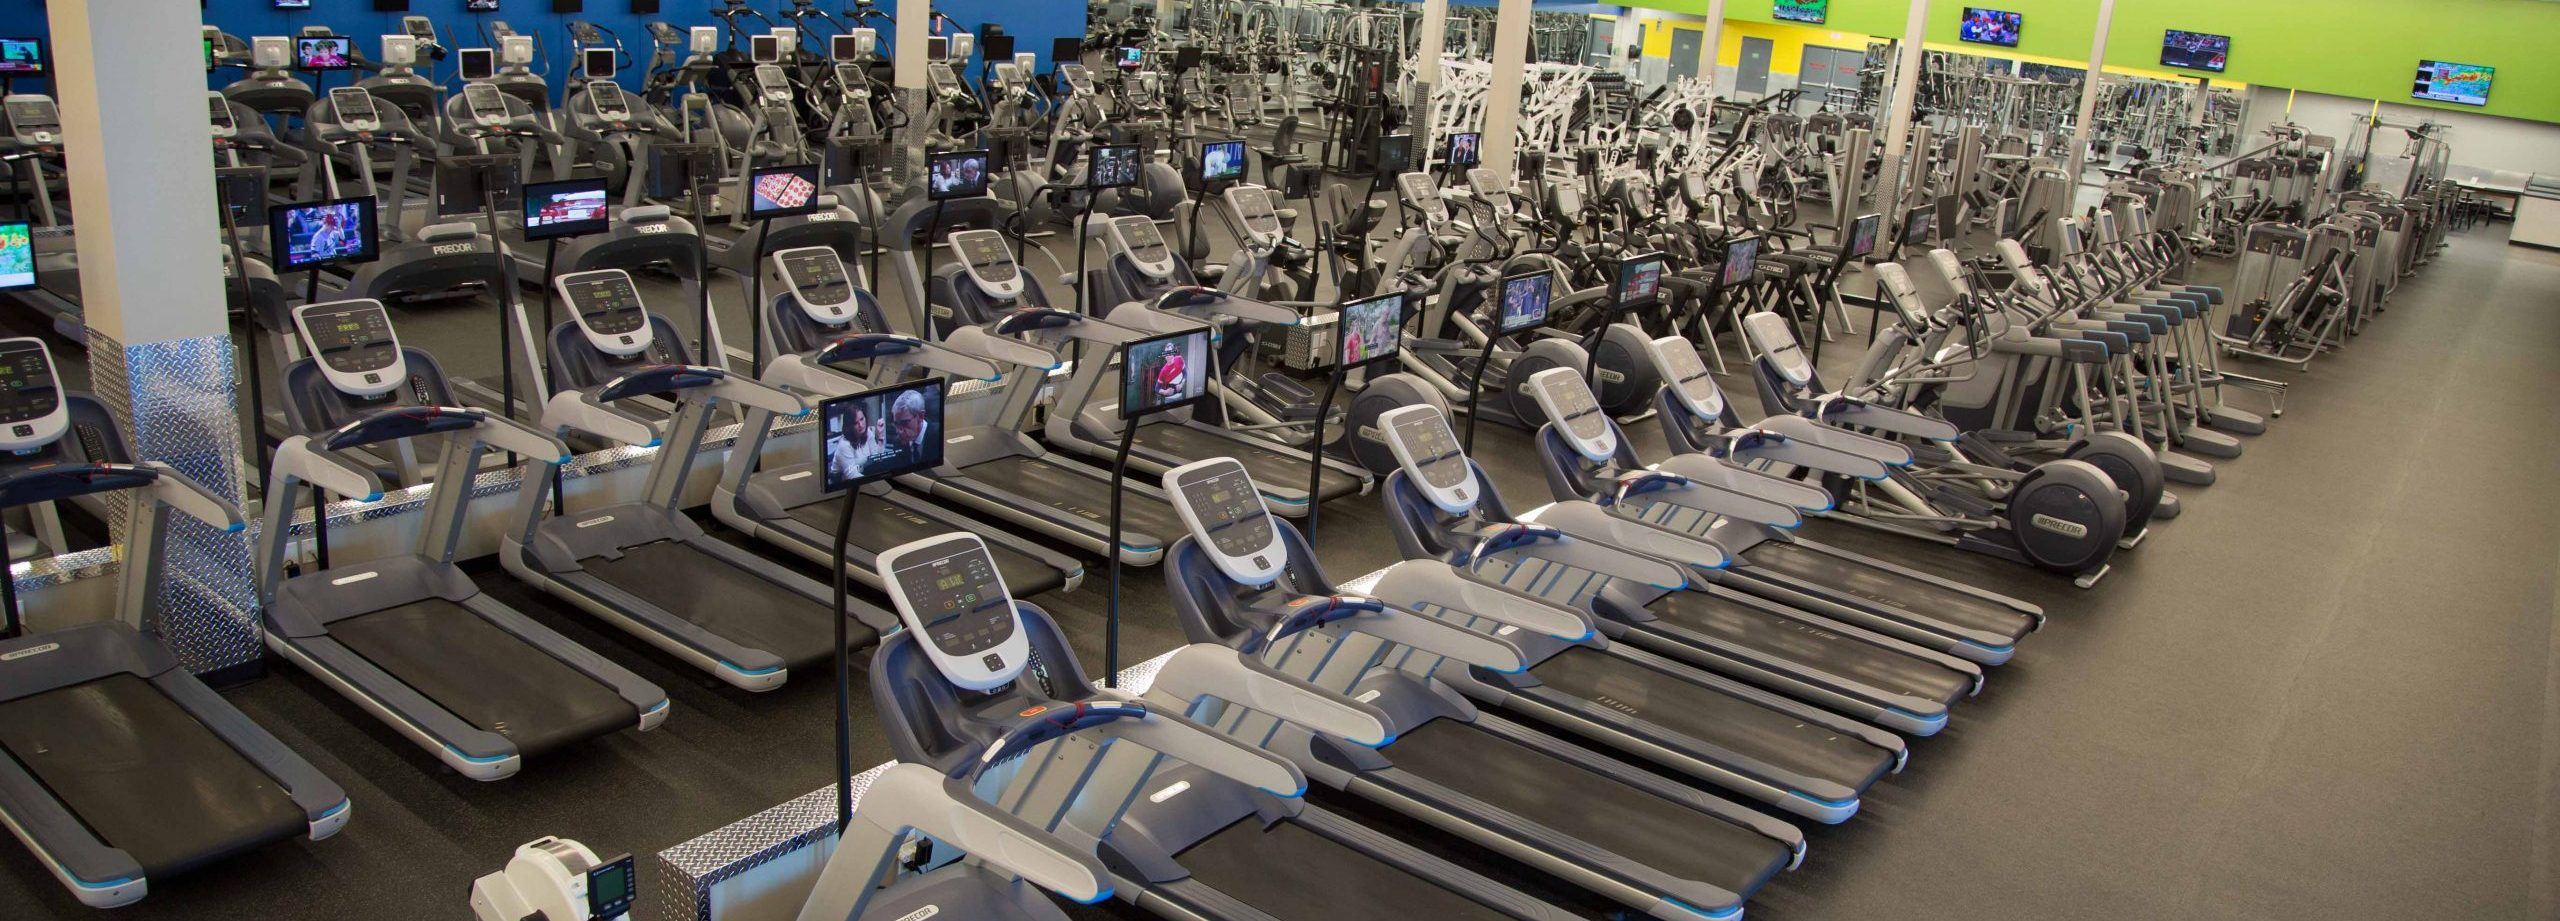 gym in oklahoma